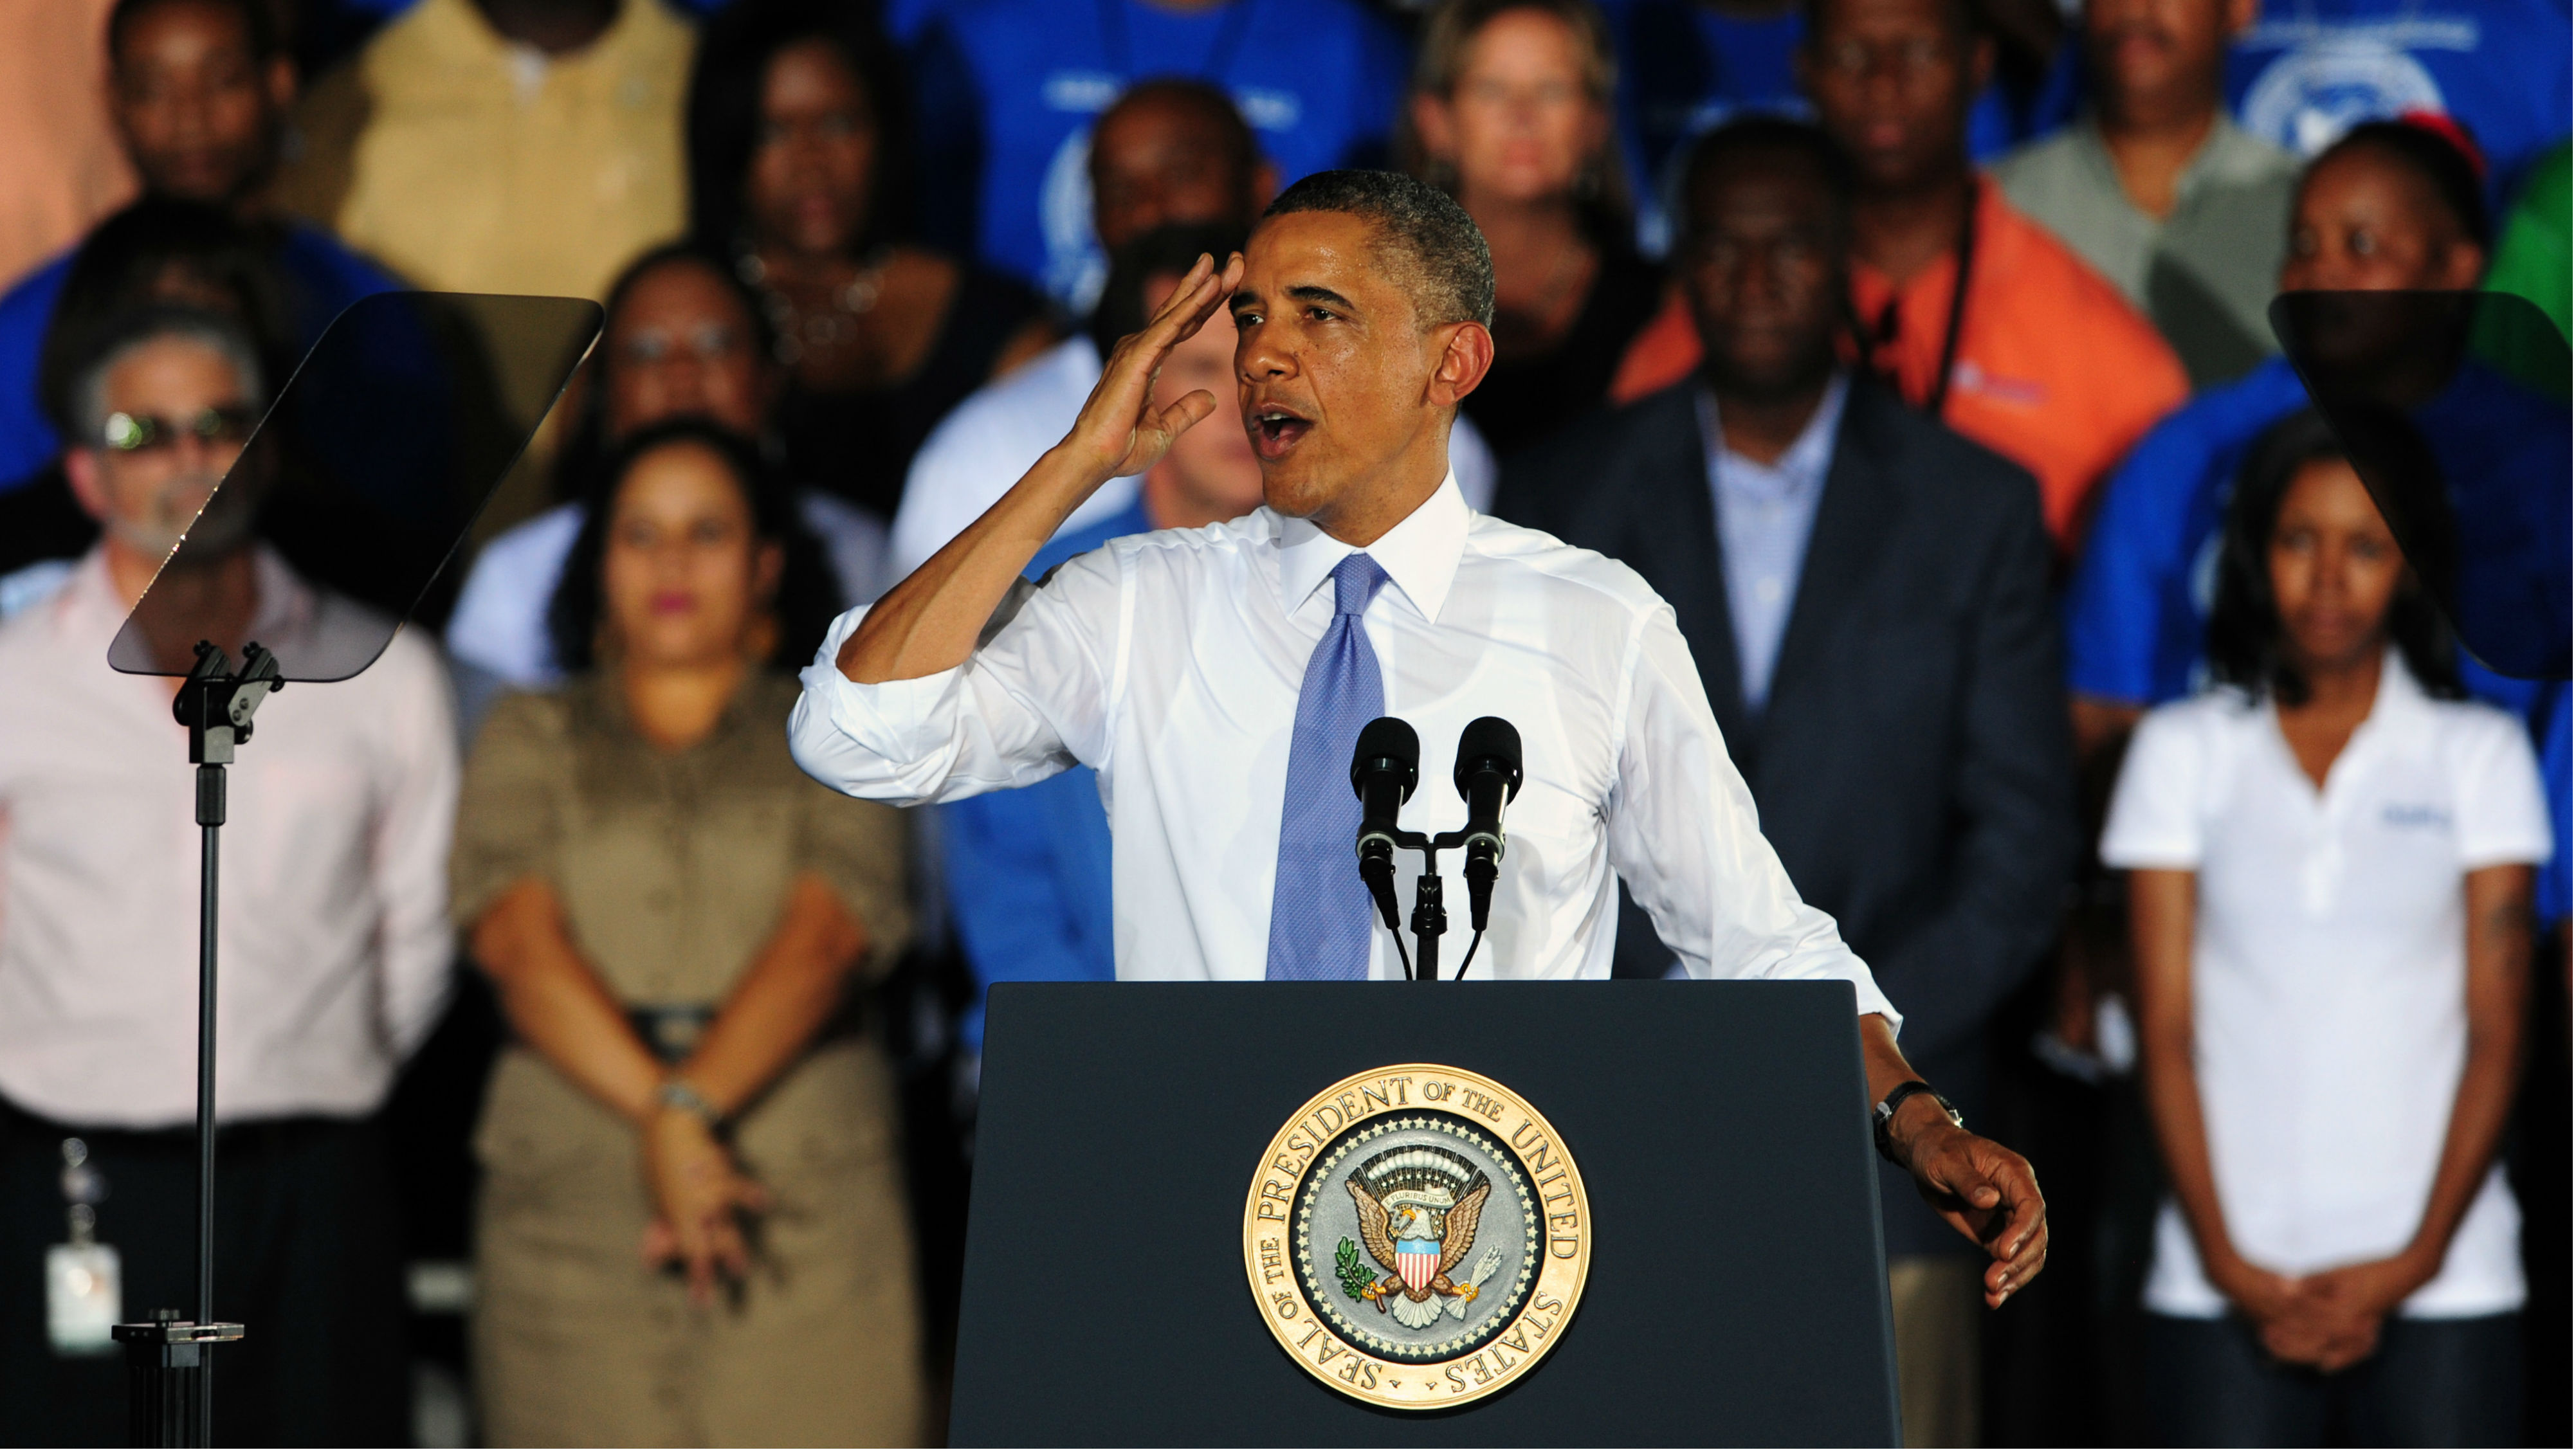 Obama giving a speech and wiping sweat off his face.